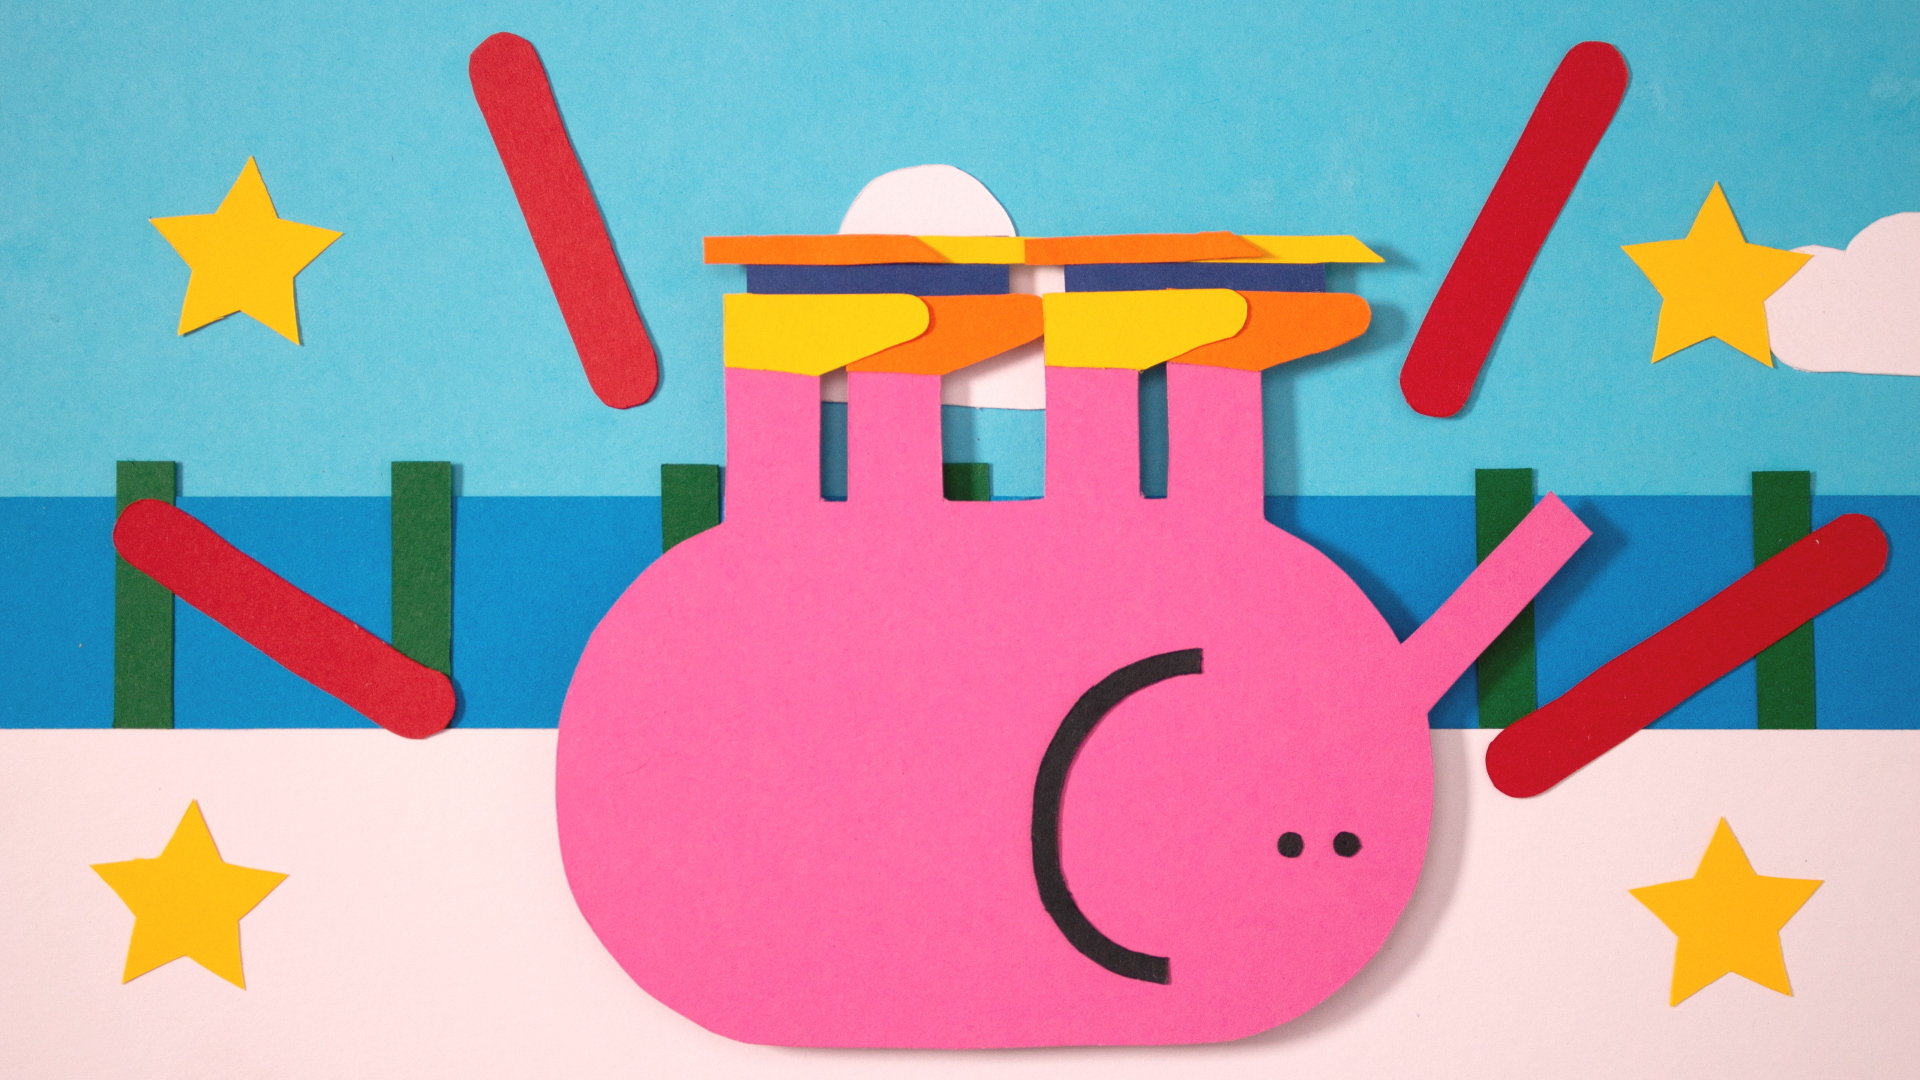 elephant ice- cbeebies, stop motion for kit and pup---young-illustration-and-animation,-paper-craft-stop-motion, animated children_00645_00215_00161.jpg